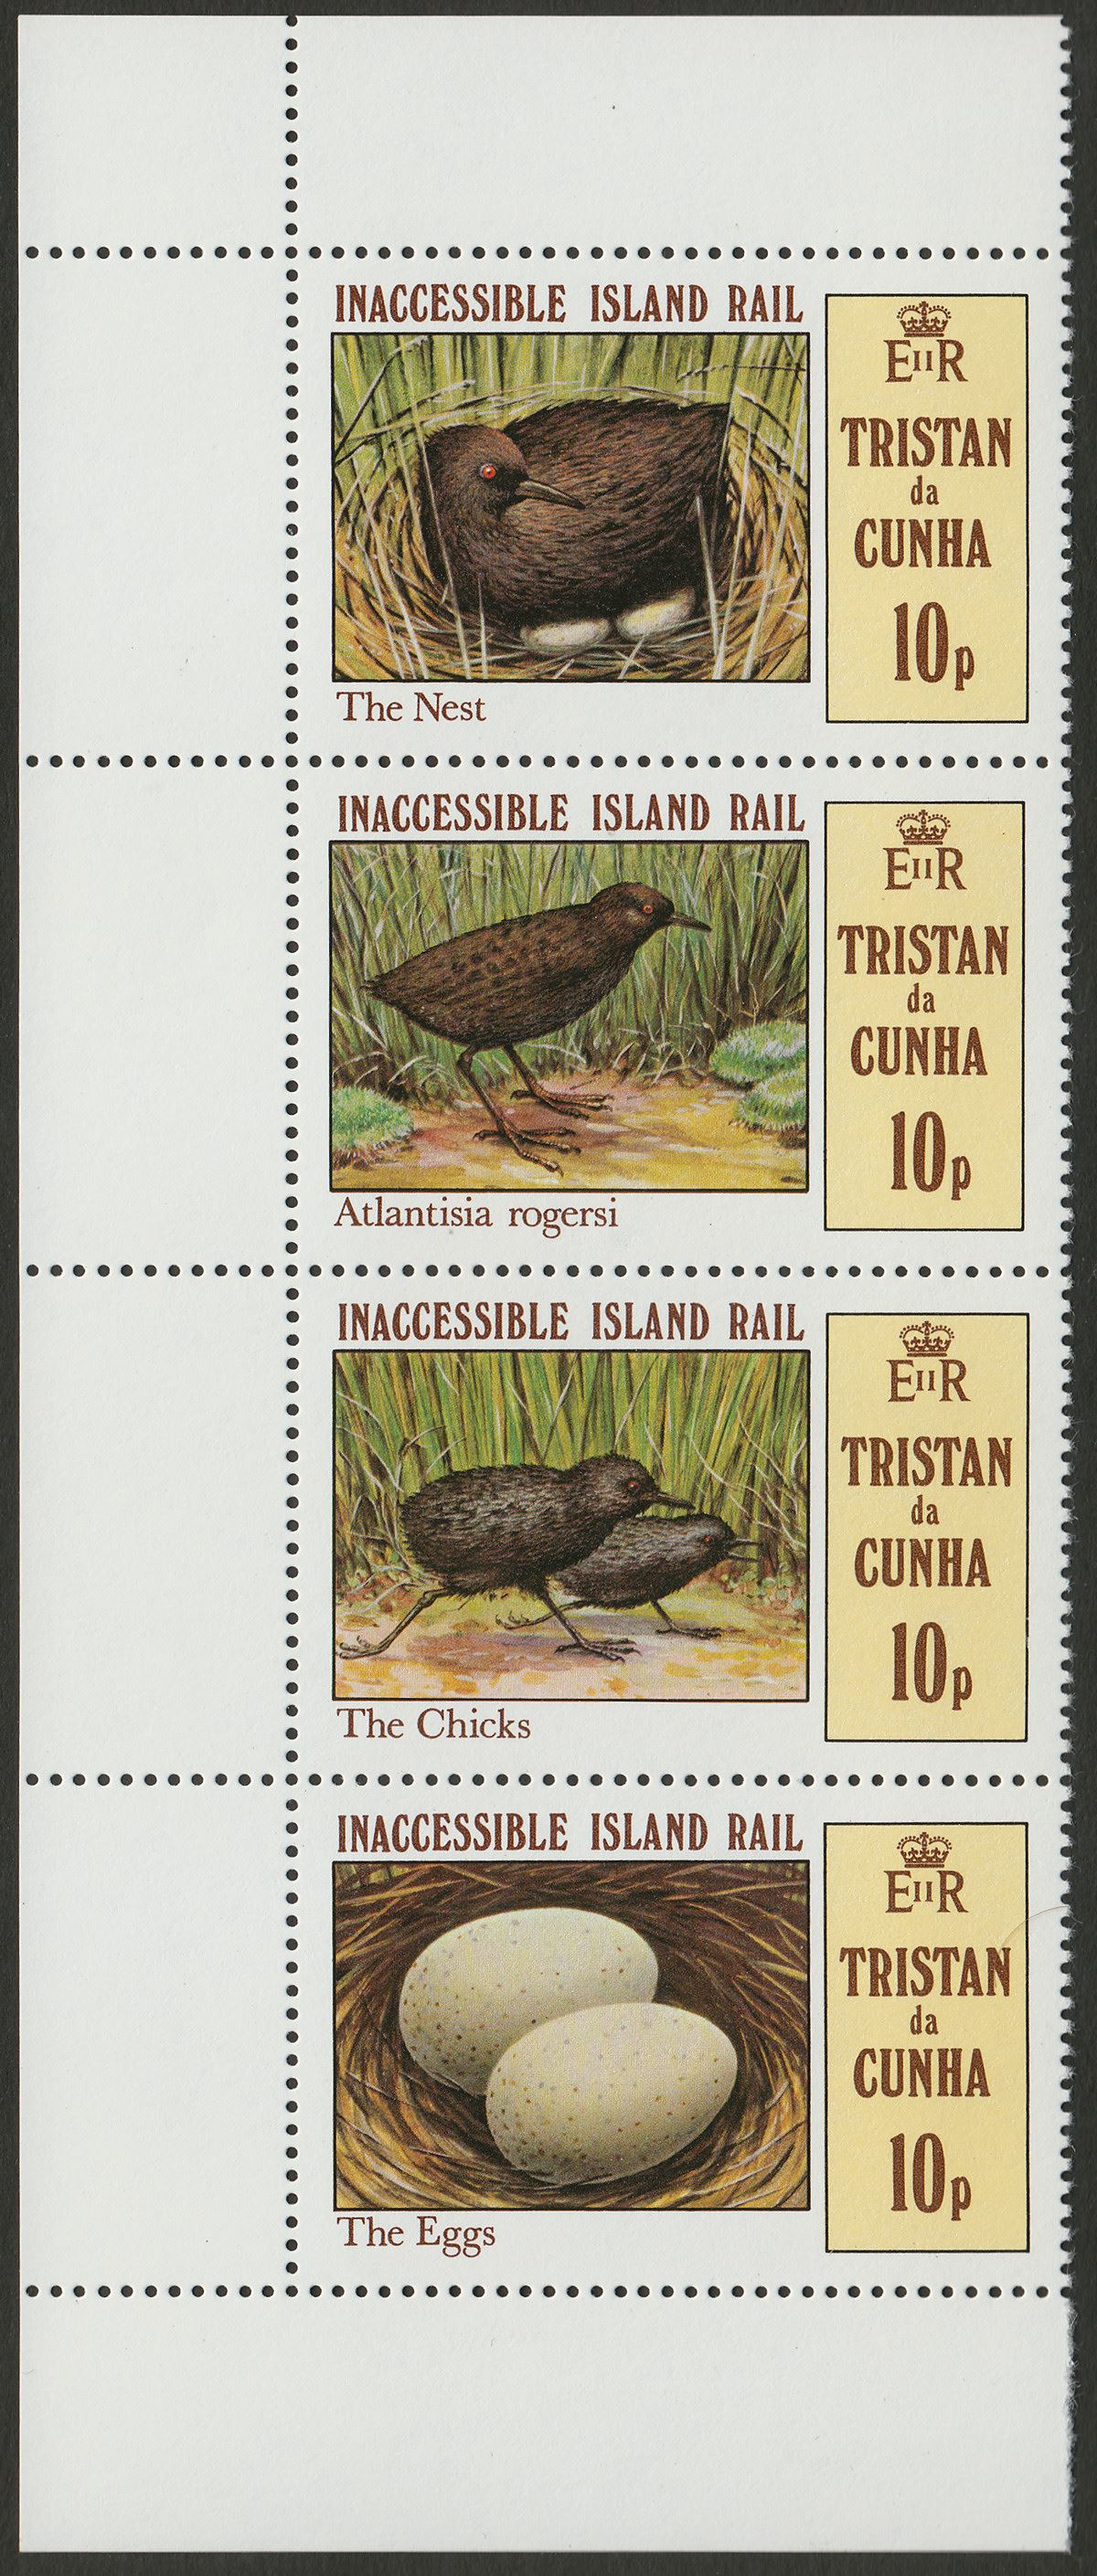 Tristan da Cunha 1981 QEII Inaccessible Rail 10p Strip wmk Inverted Mint SG315aw